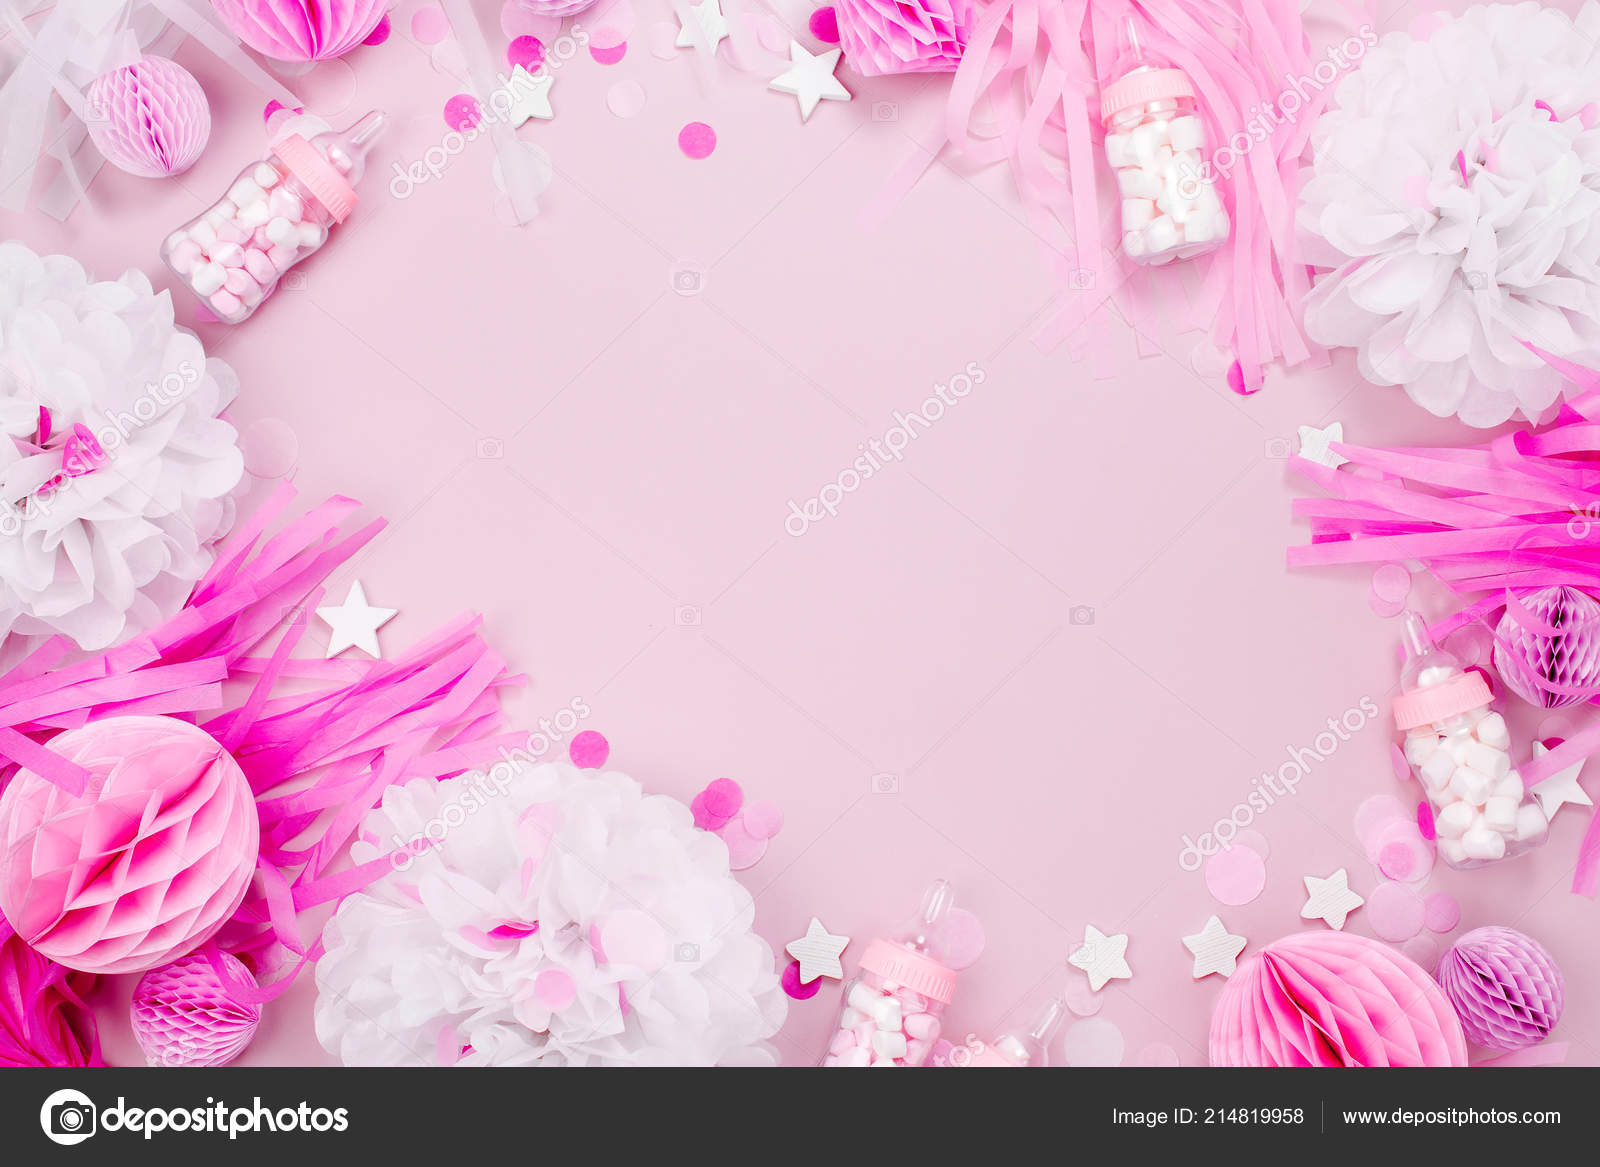 Baby Shower Party Decorations Pastel Pink Background Stock Photo